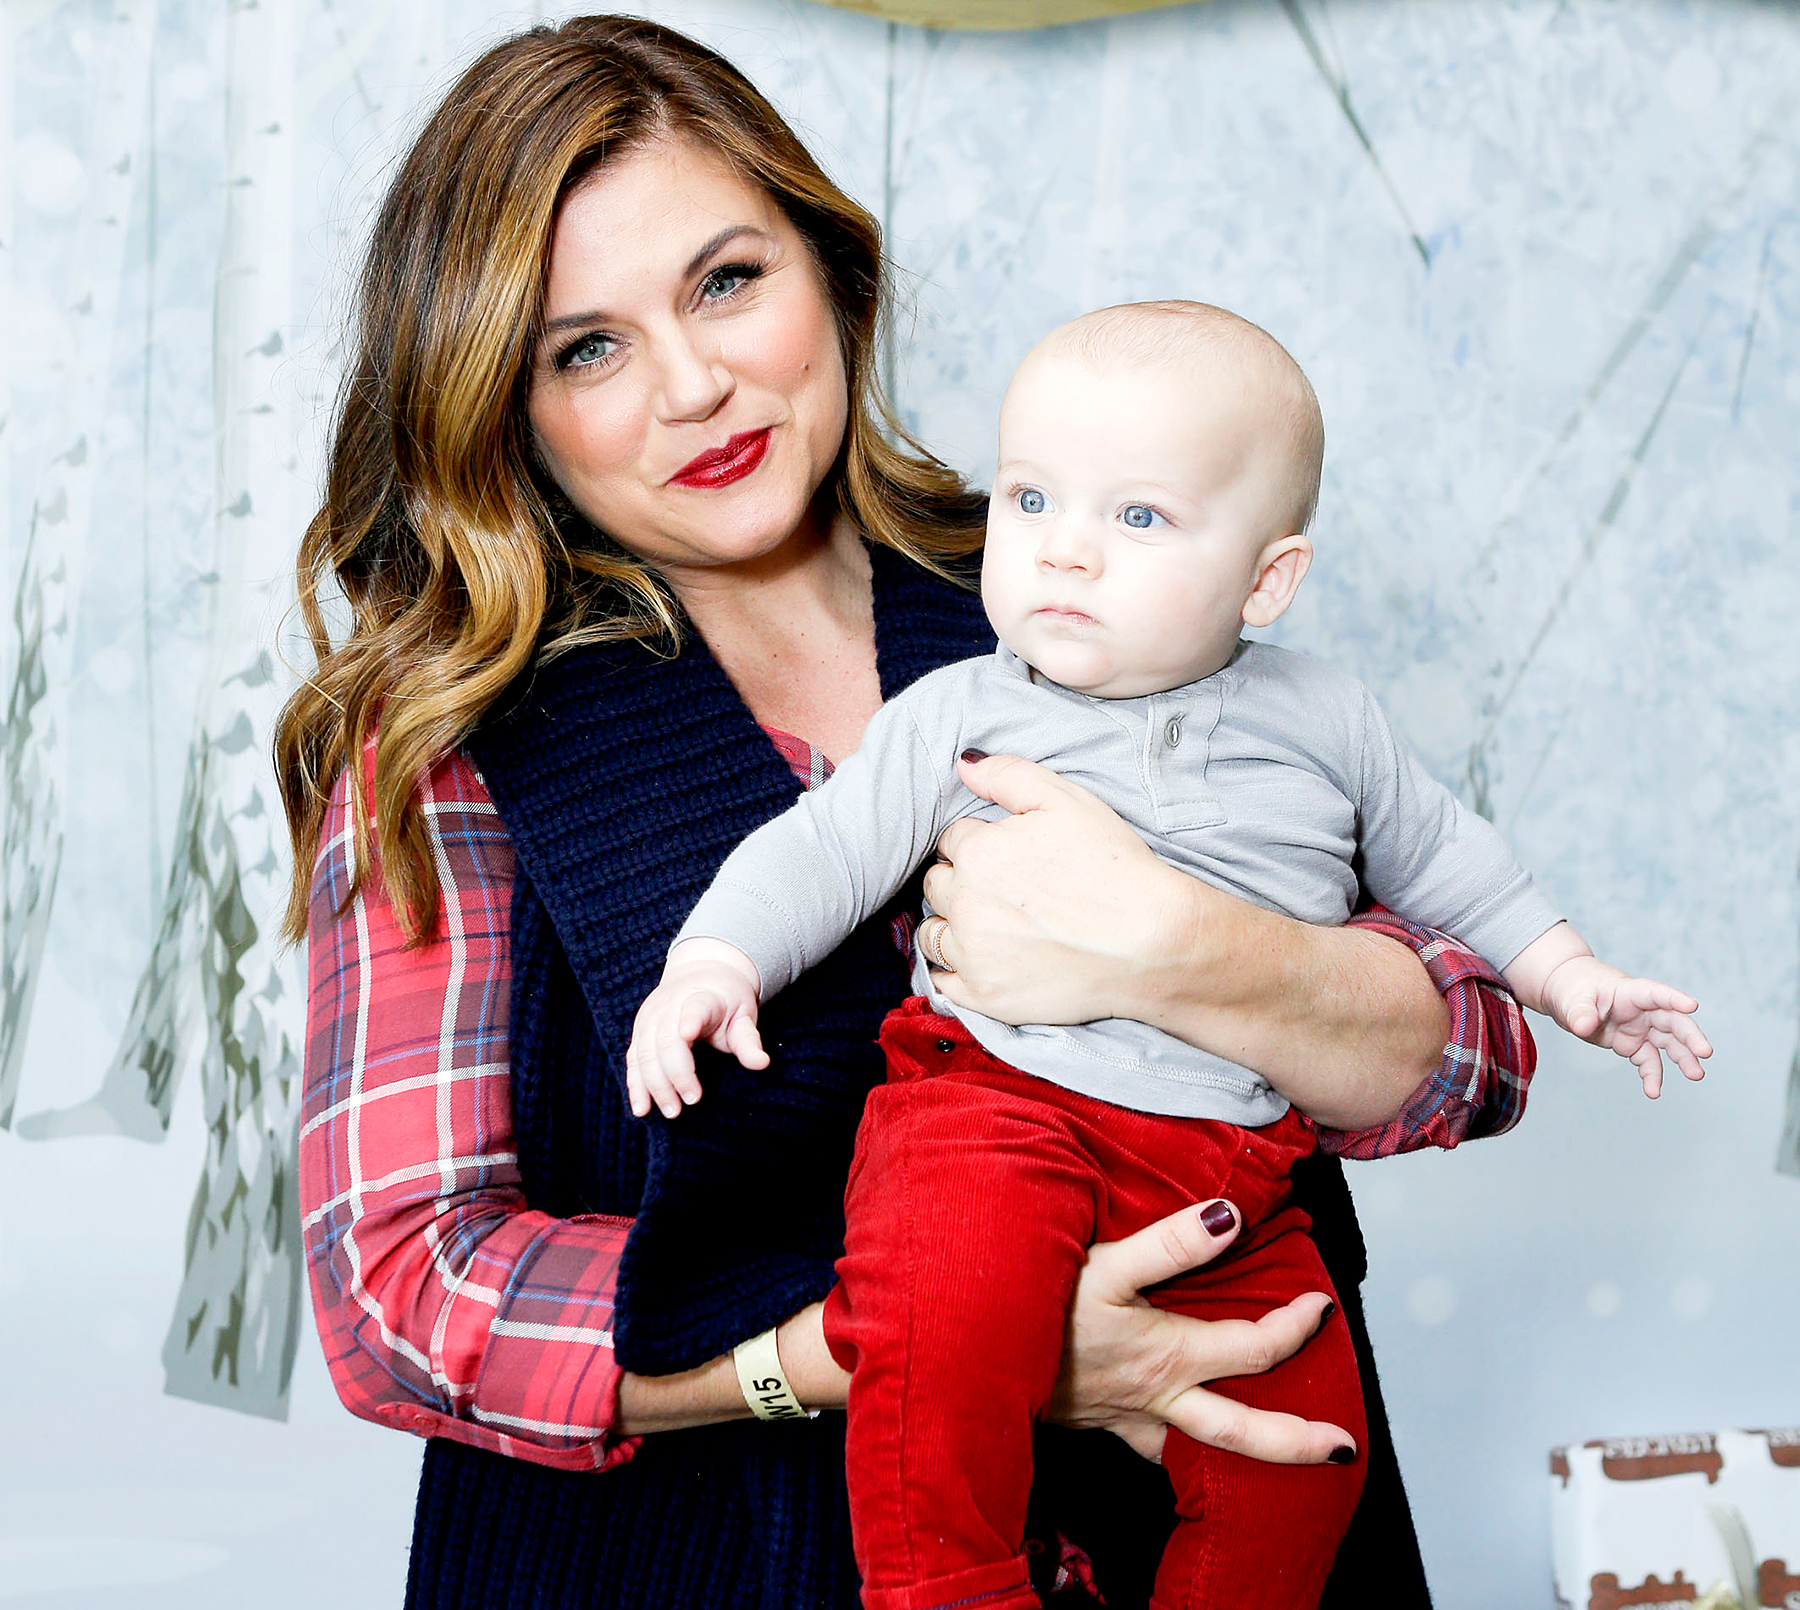 Tiffani Thiessen and son Holt Smith attend 2015 Santa's Secret Workshop Benefiting L.A. Family Housing at Andaz Hotel on December 5, 2015 in Los Angeles.